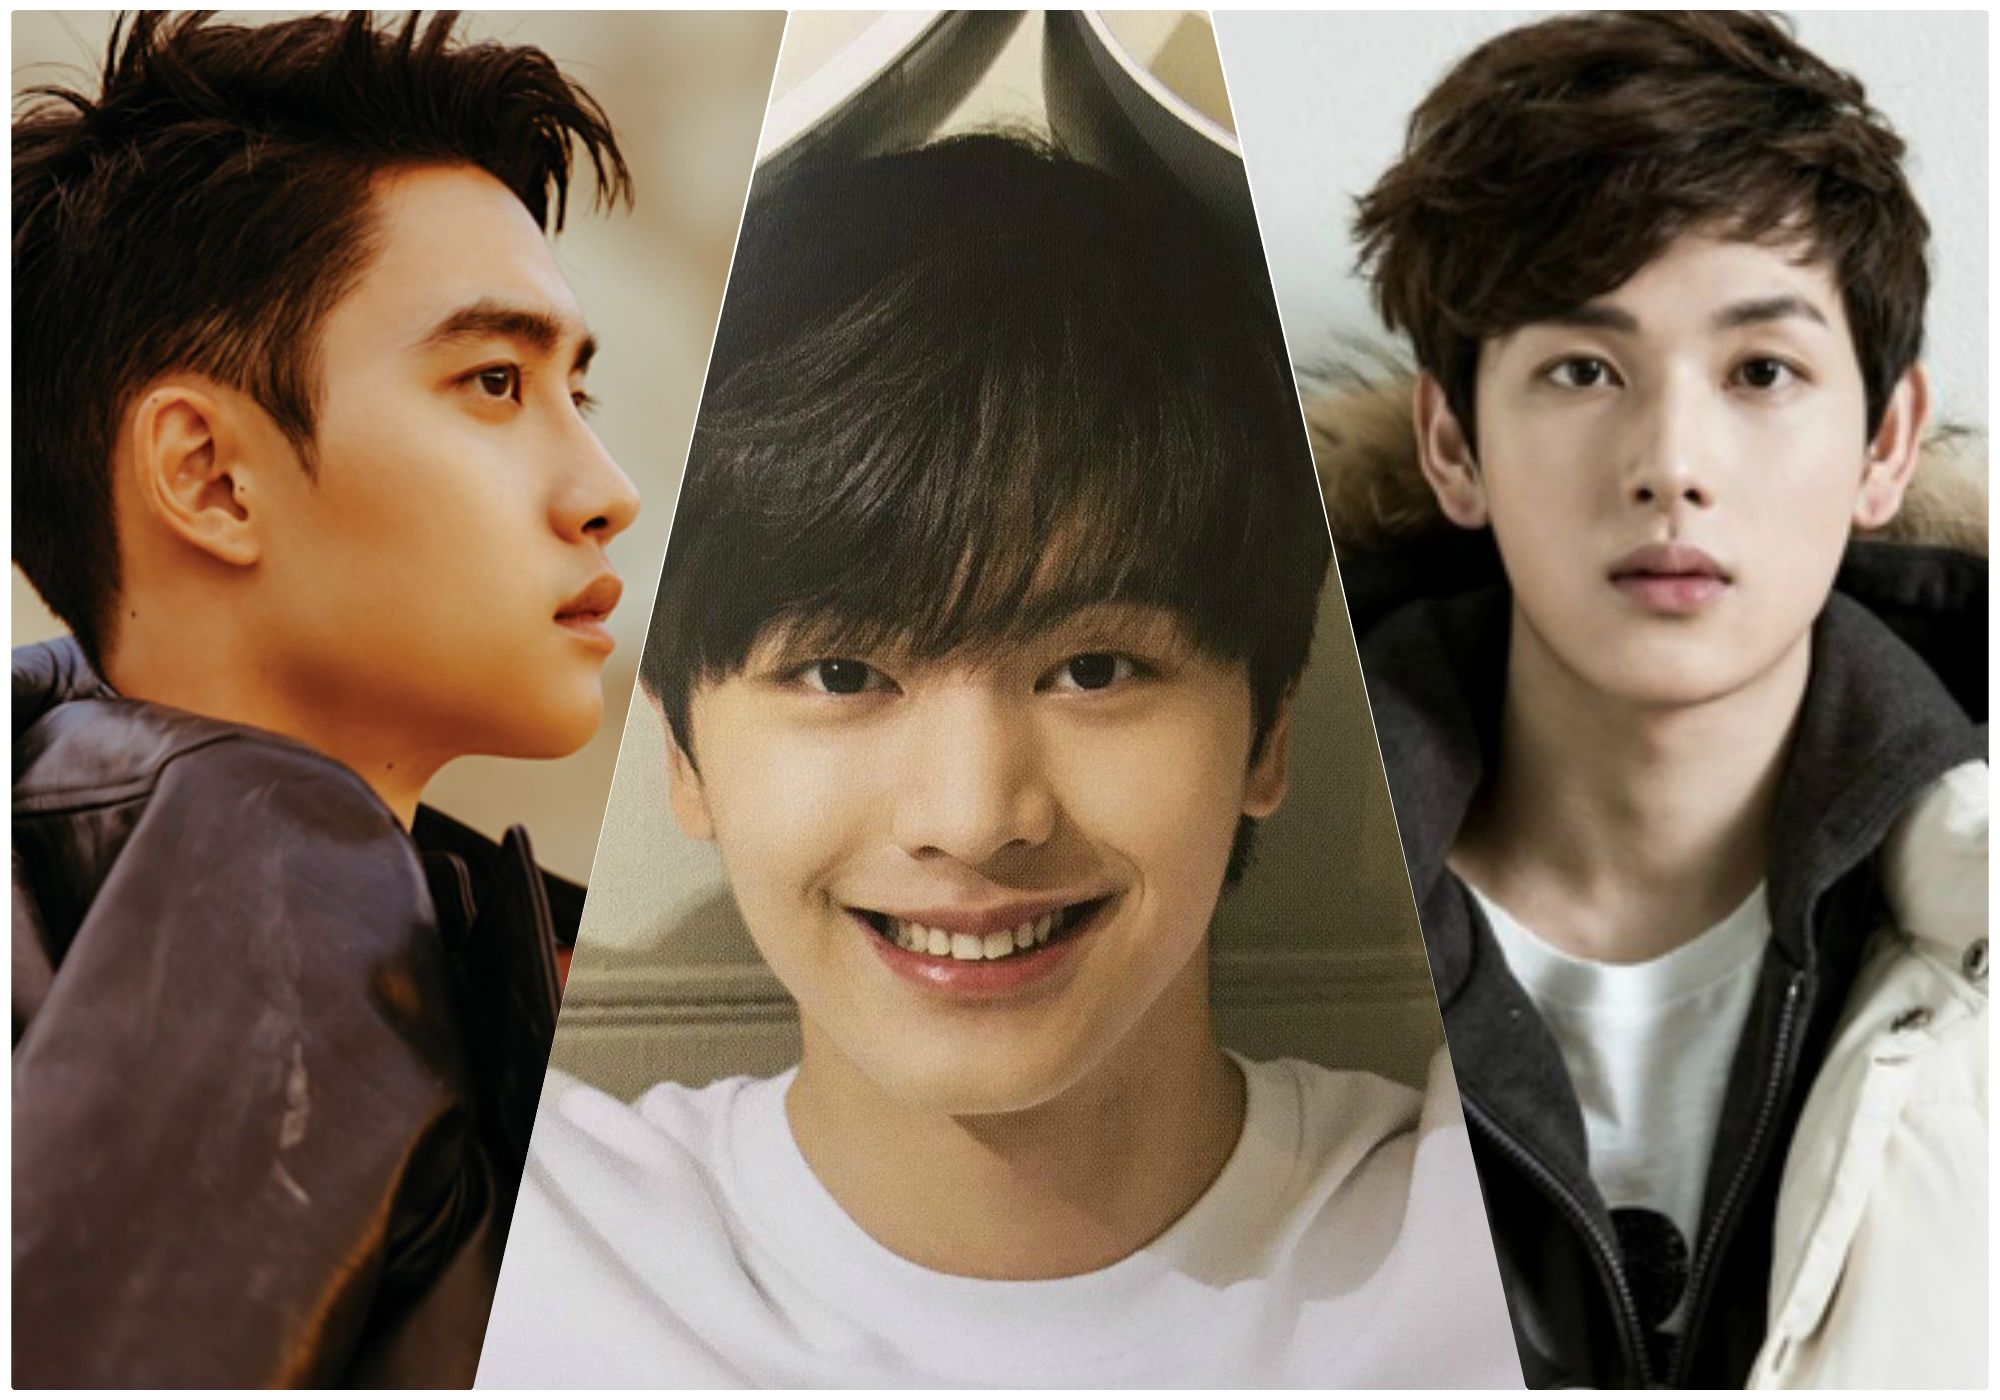 6 potential actors from idols in Korea